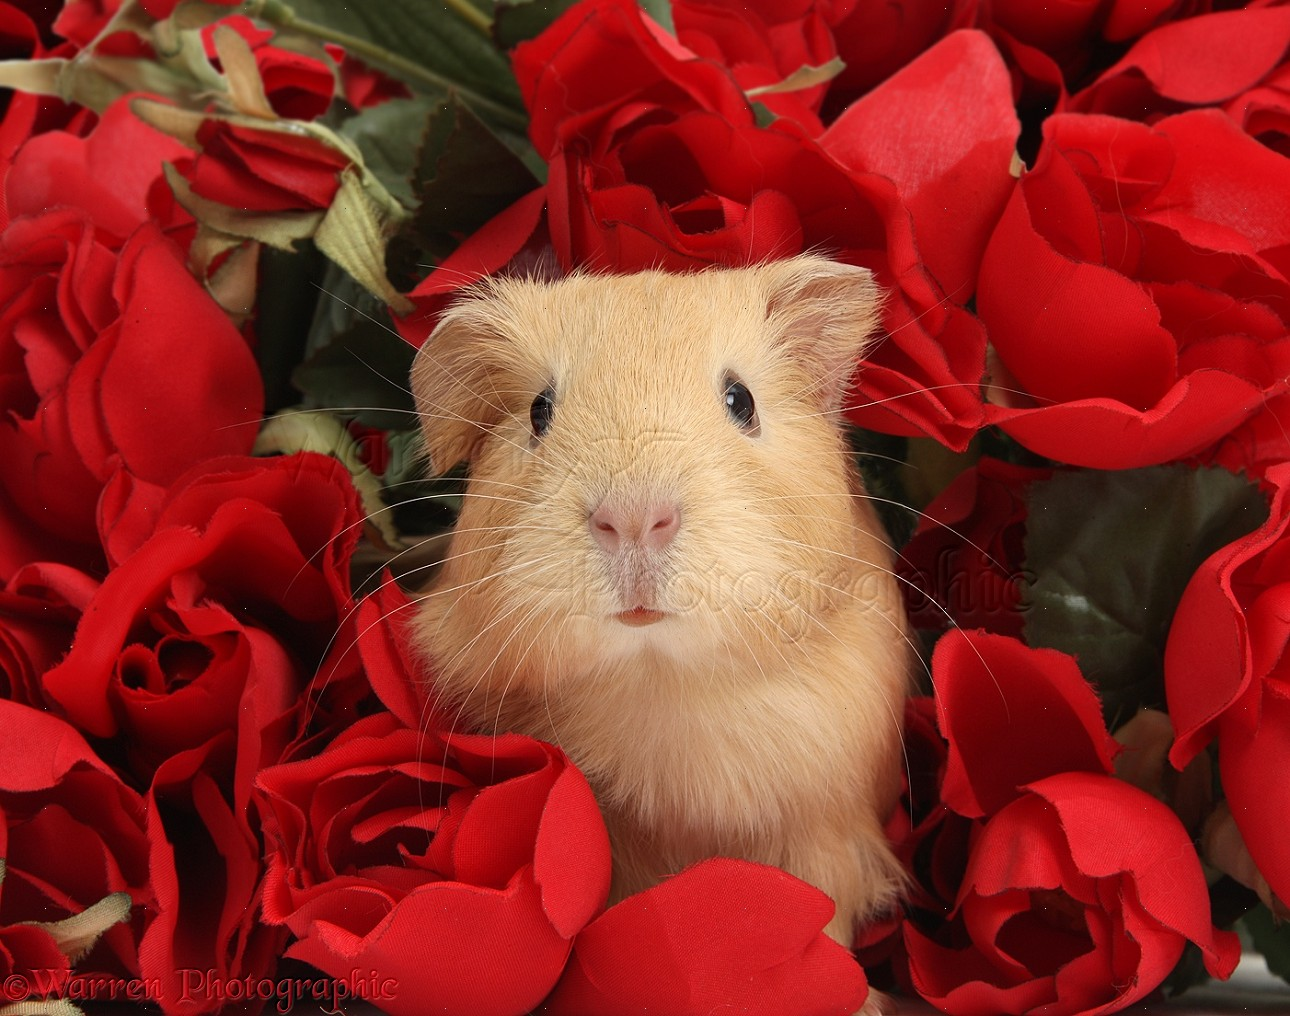 Cute baby yellow Guinea pig among red roses photo WP38980